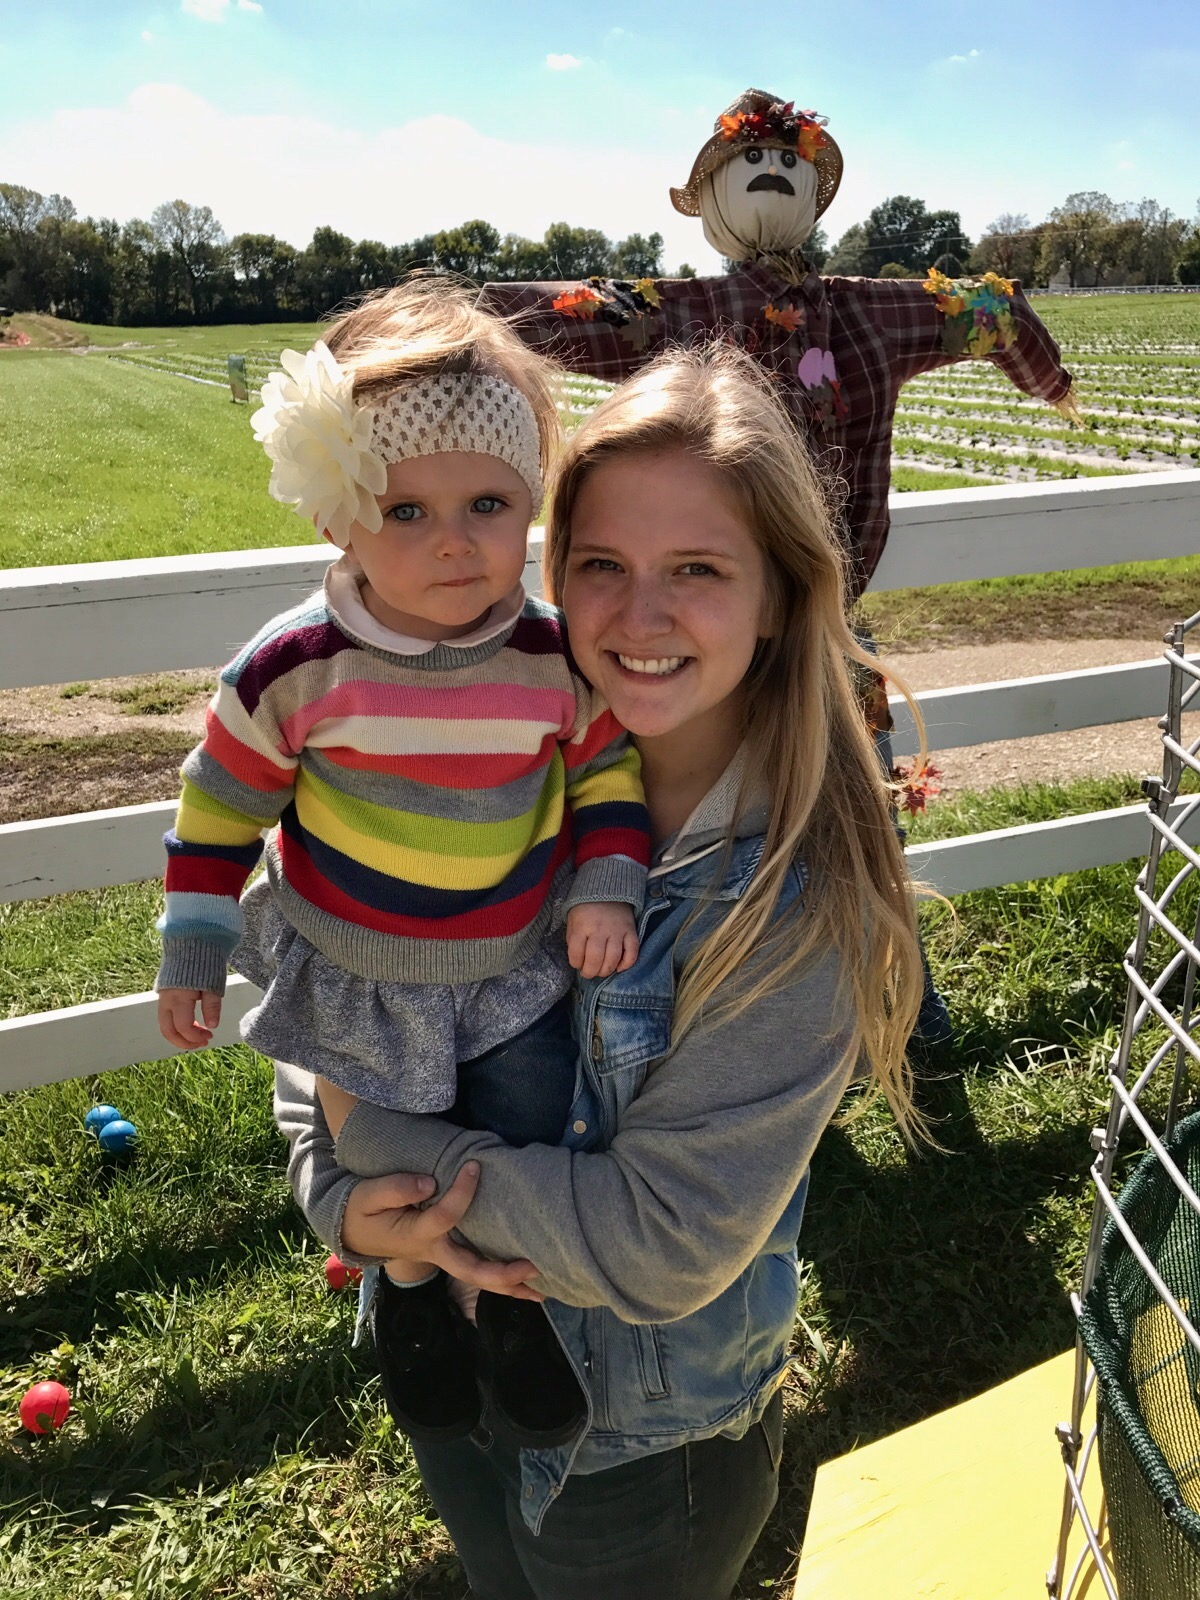 Our newest Northland CAPS intern, Natalie Masters, with her 1.5 year old niece.